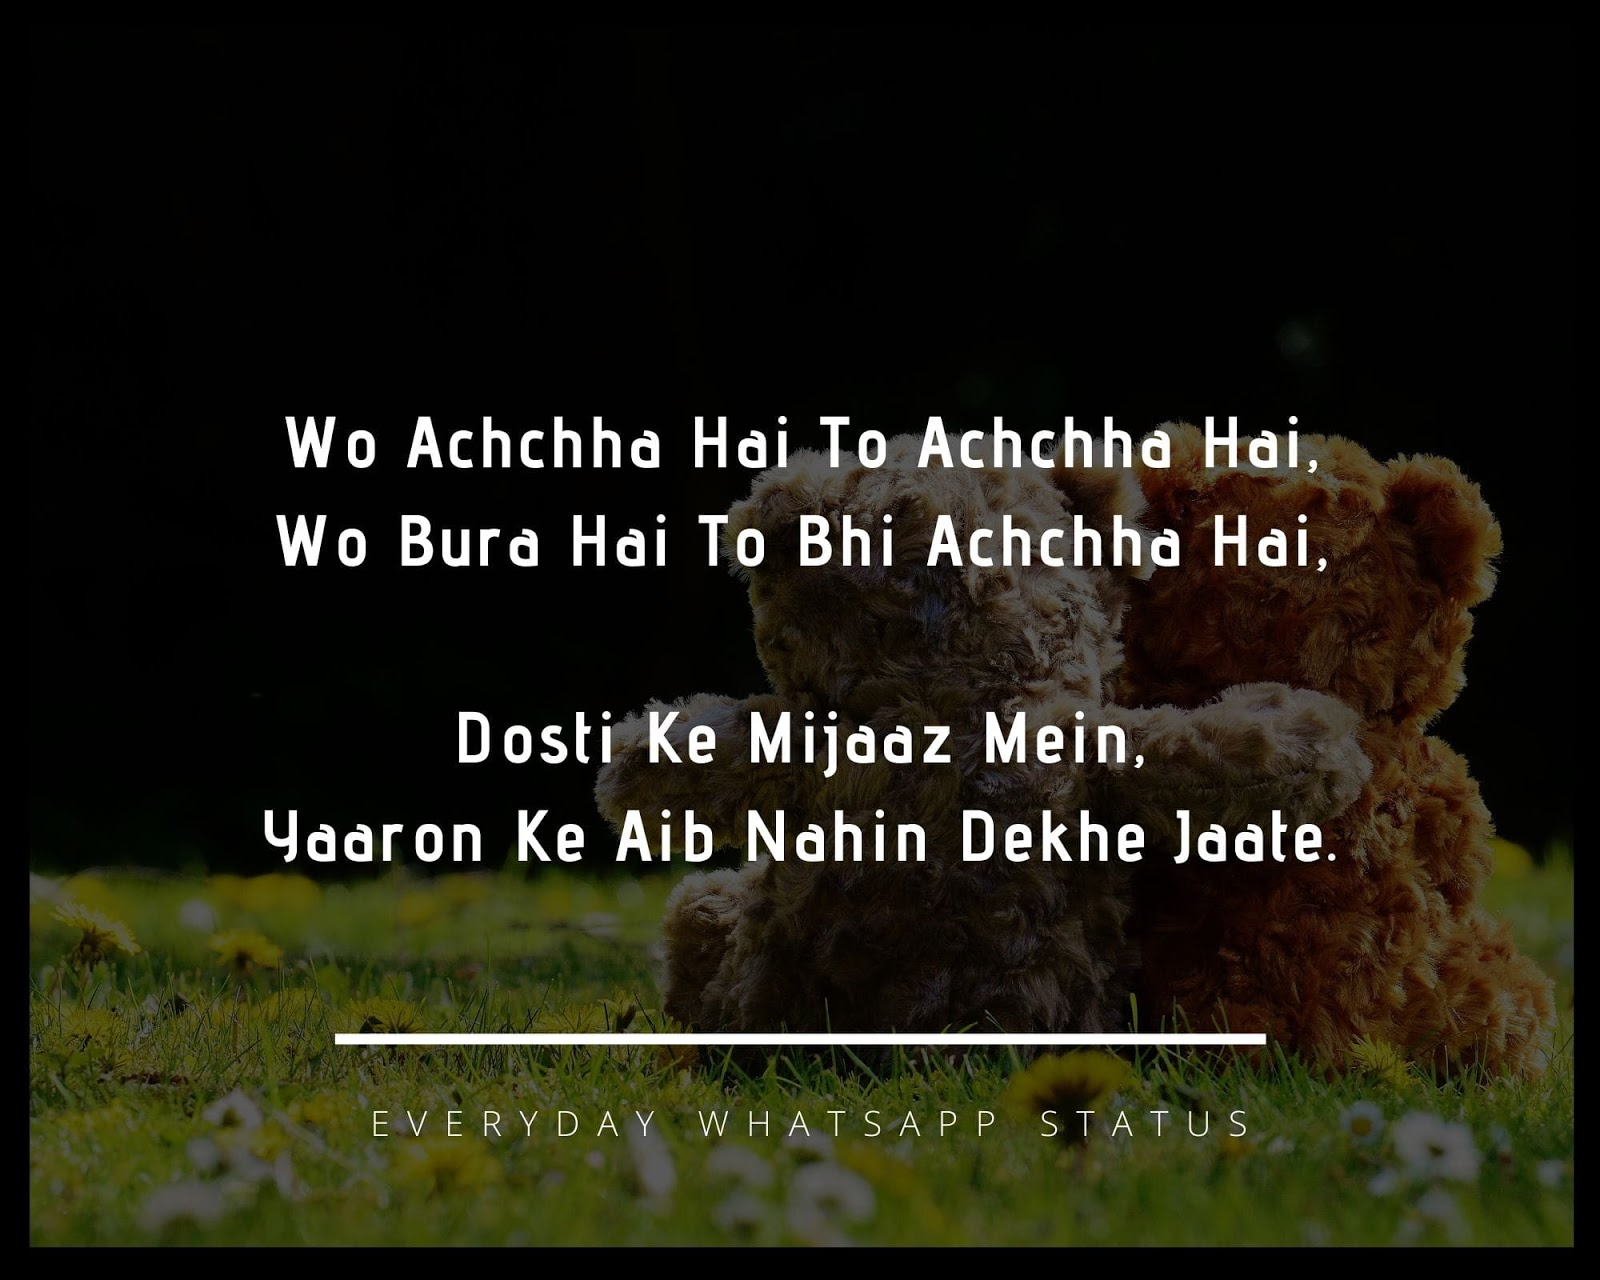 Hindi Shayari Dosti Love - Wo Achchha Hai To Achchha Hai